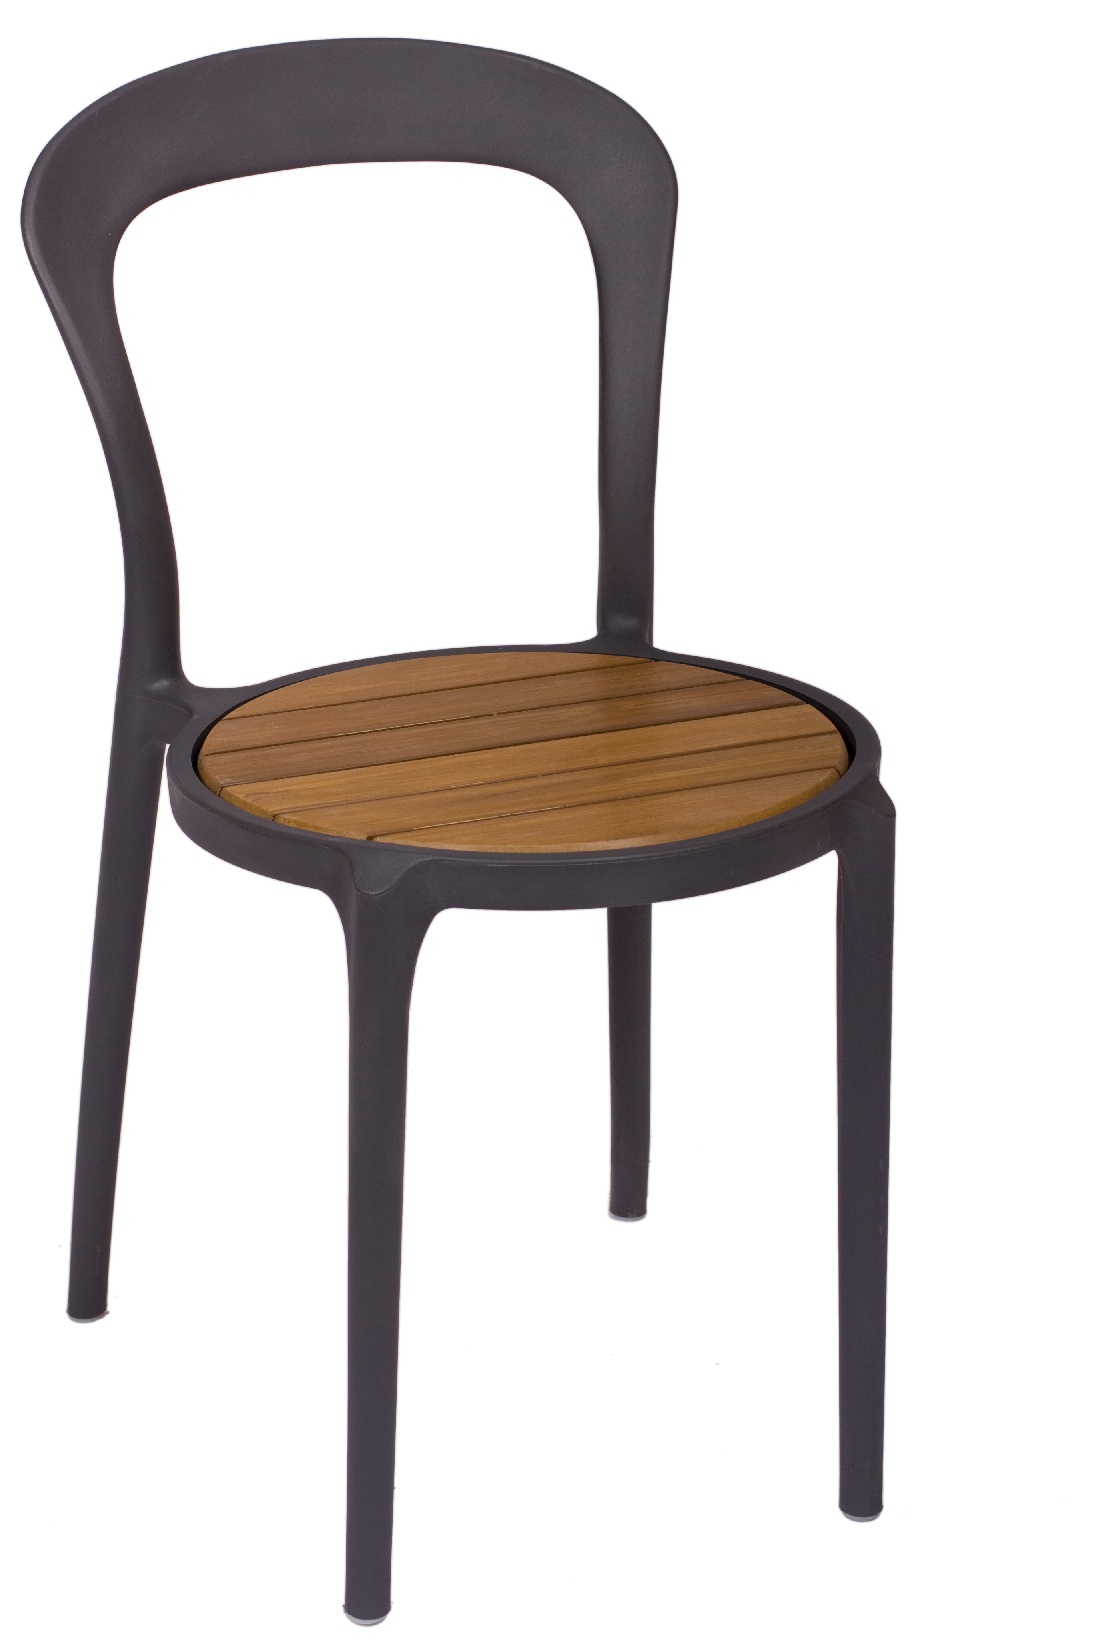 BFM Malibu Outdoor Restaurant Synthetic Teak Chair- Charcoal